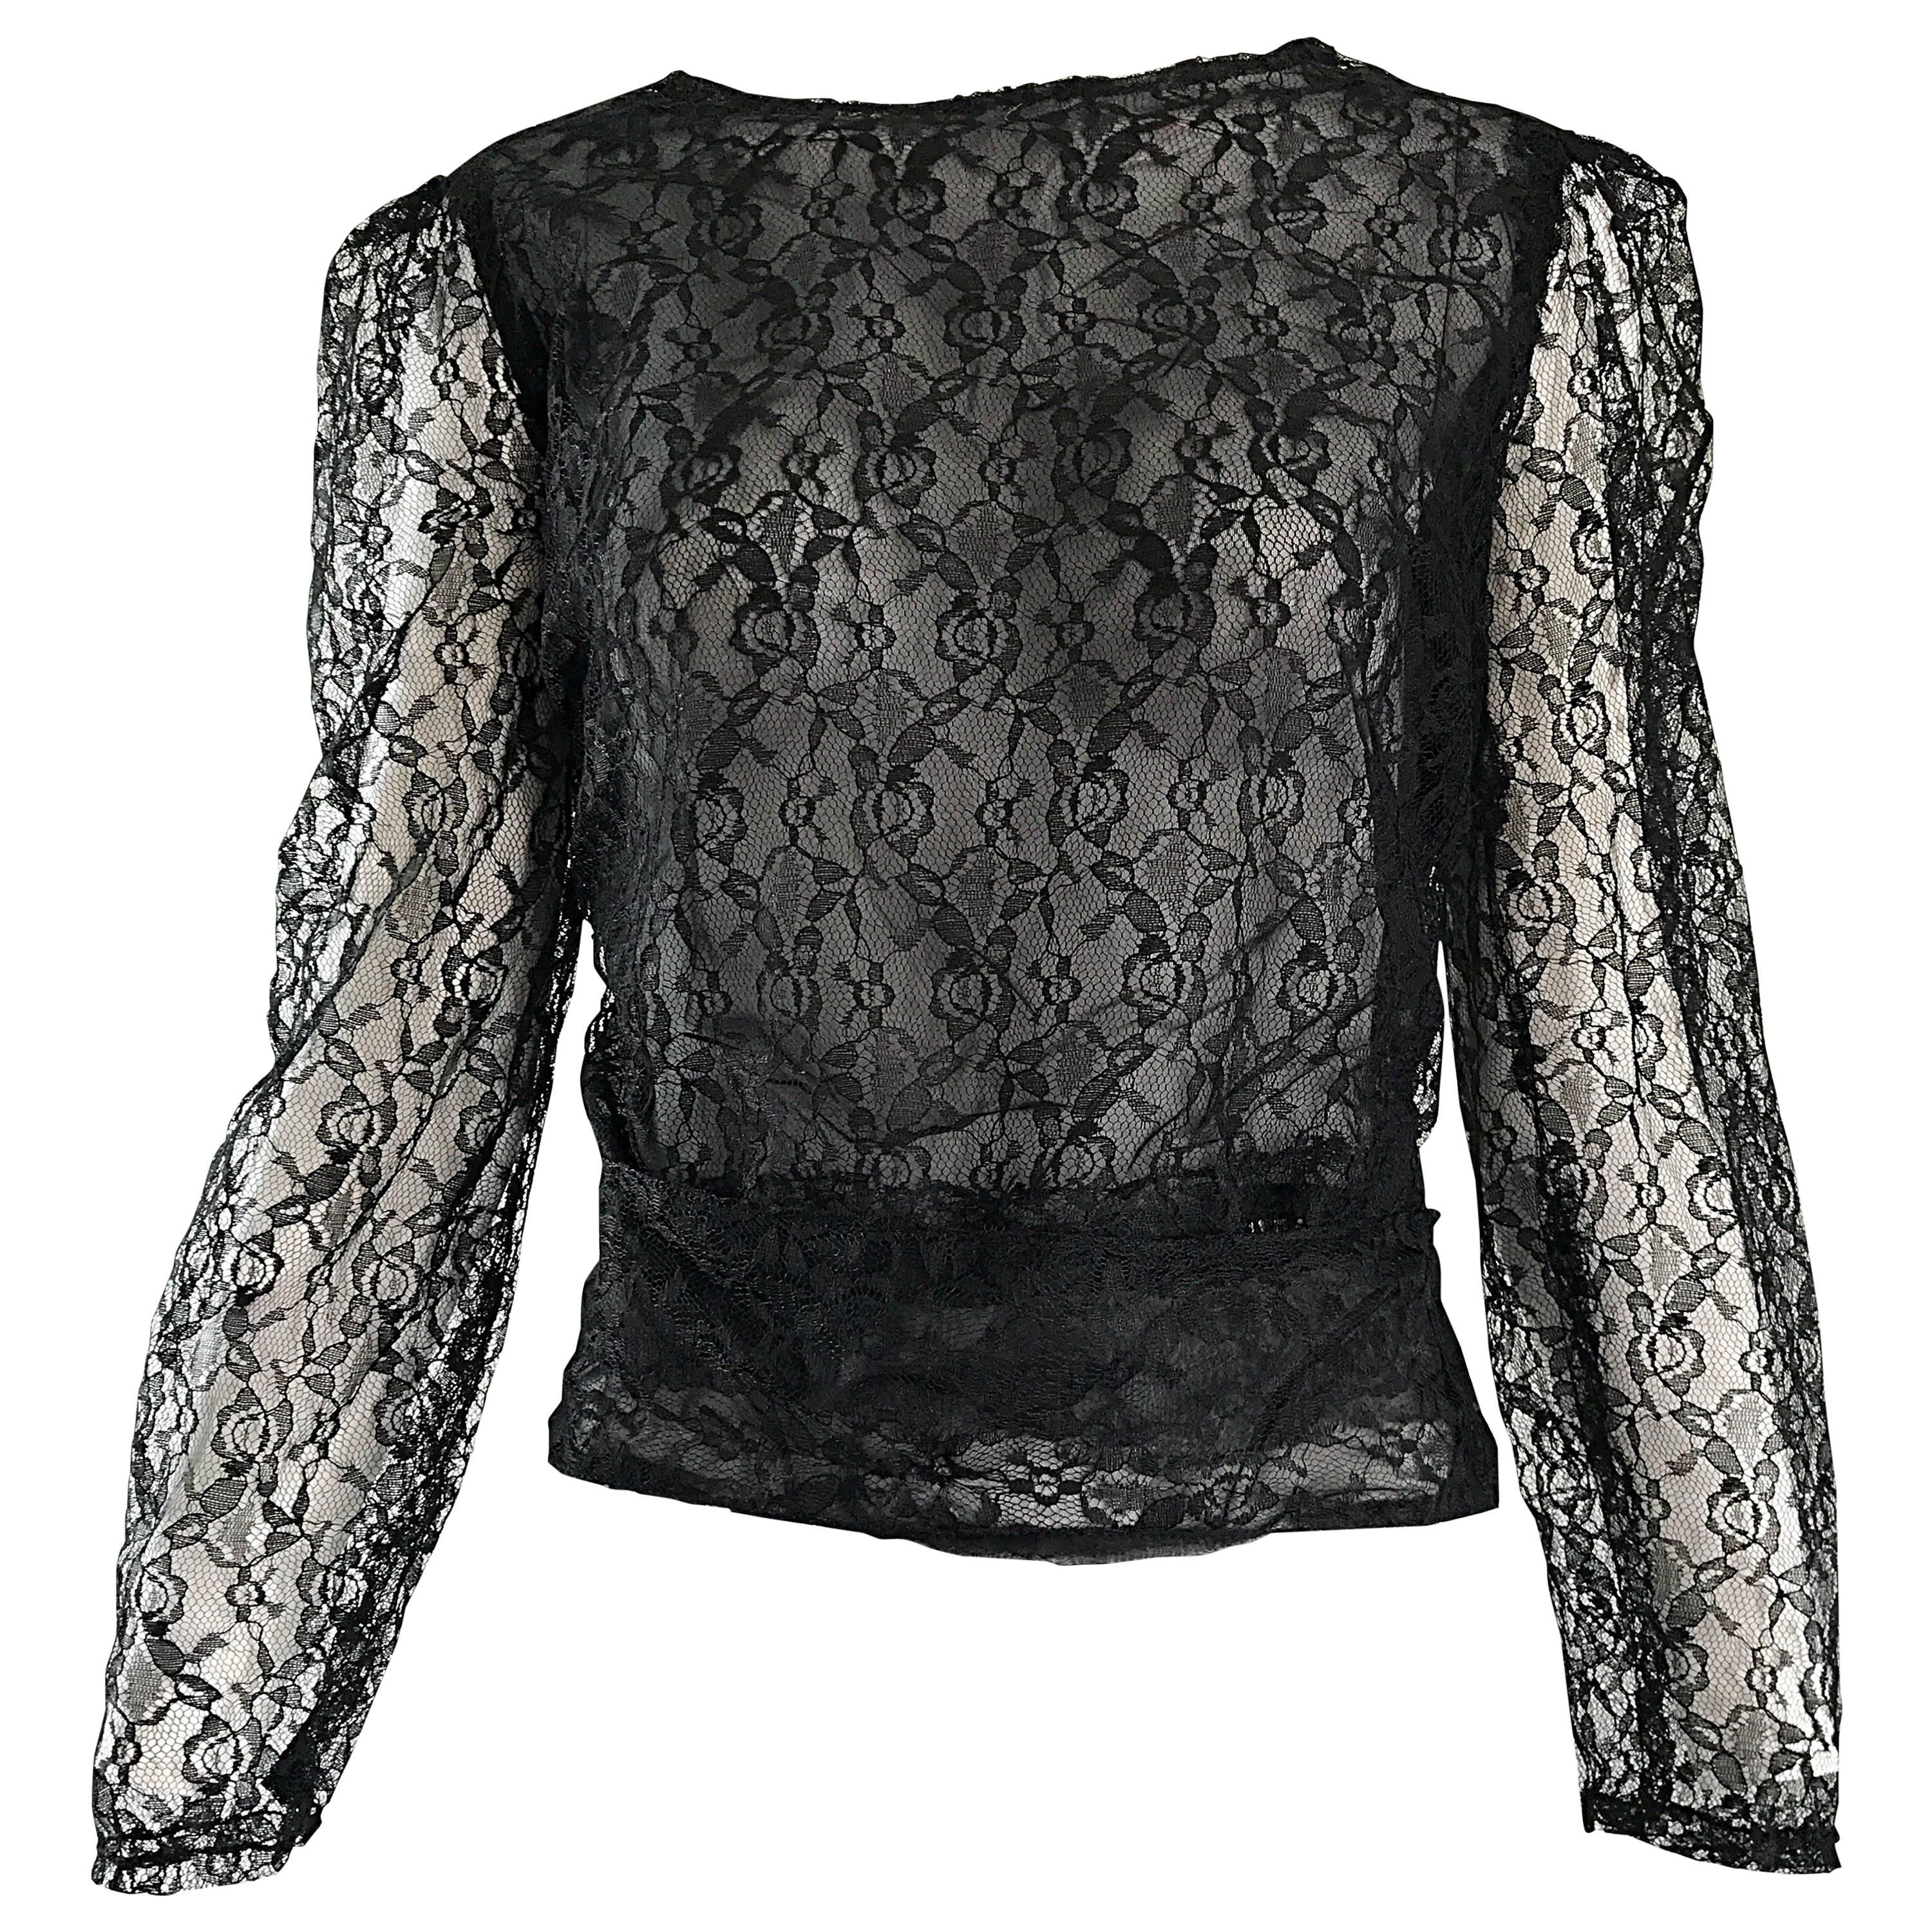 Arrtributed Vintage Chanel Couture Black Silk Chiffon Lace Sheer 90s Blouse Top